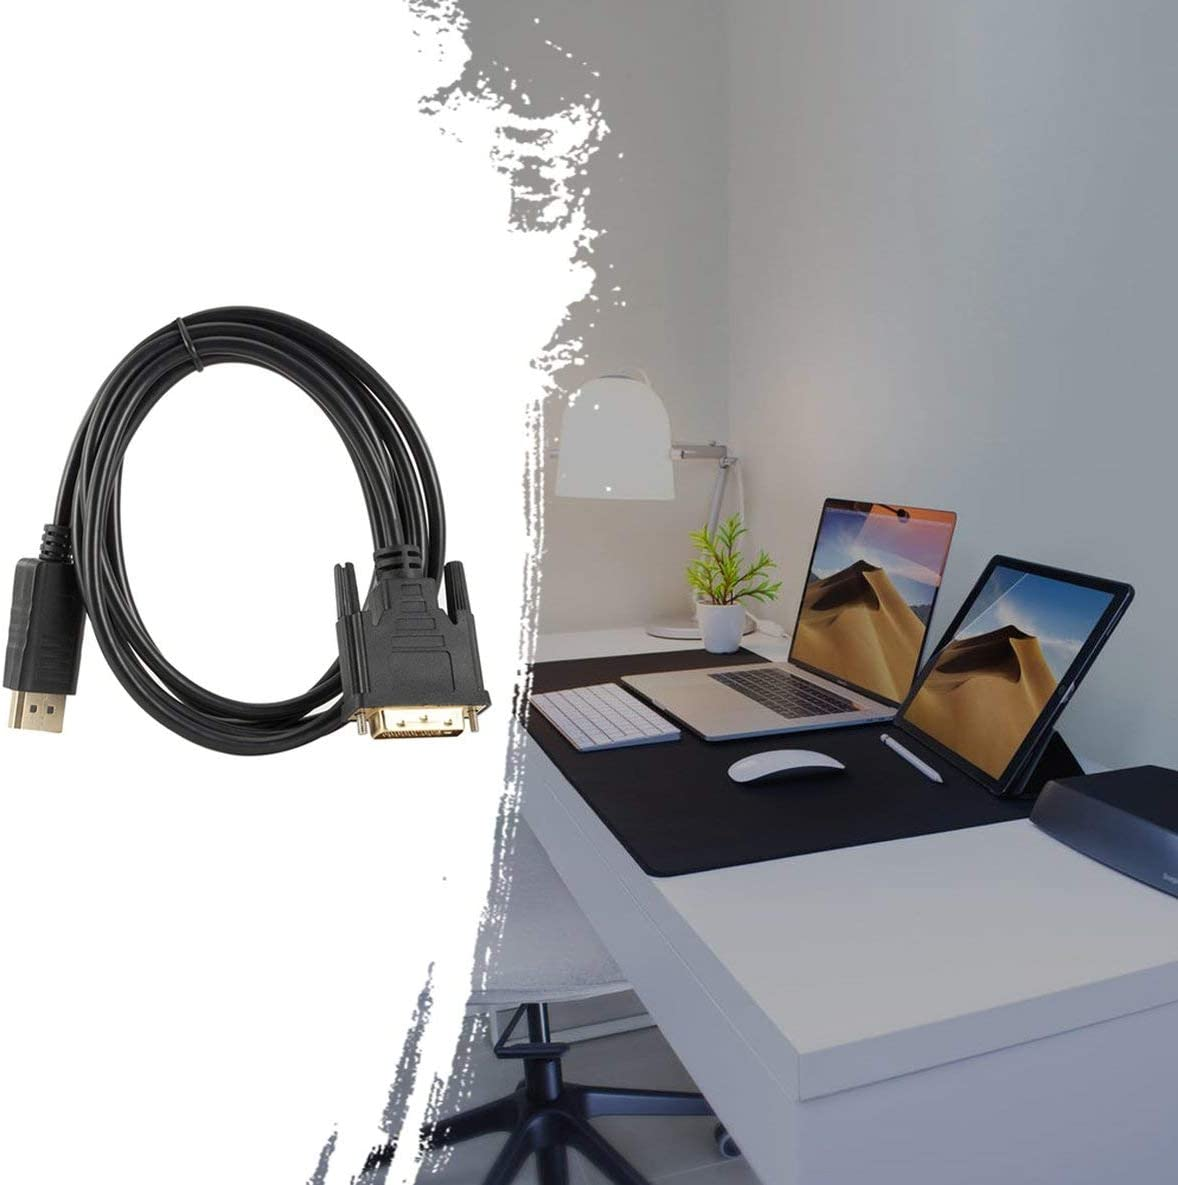 1 Adapterkabel 1,8 Meter 1080P Multiple Screens Display Funktion Noradtjcca DP zu DVI Adapterkabel Displayport zu DVI 24